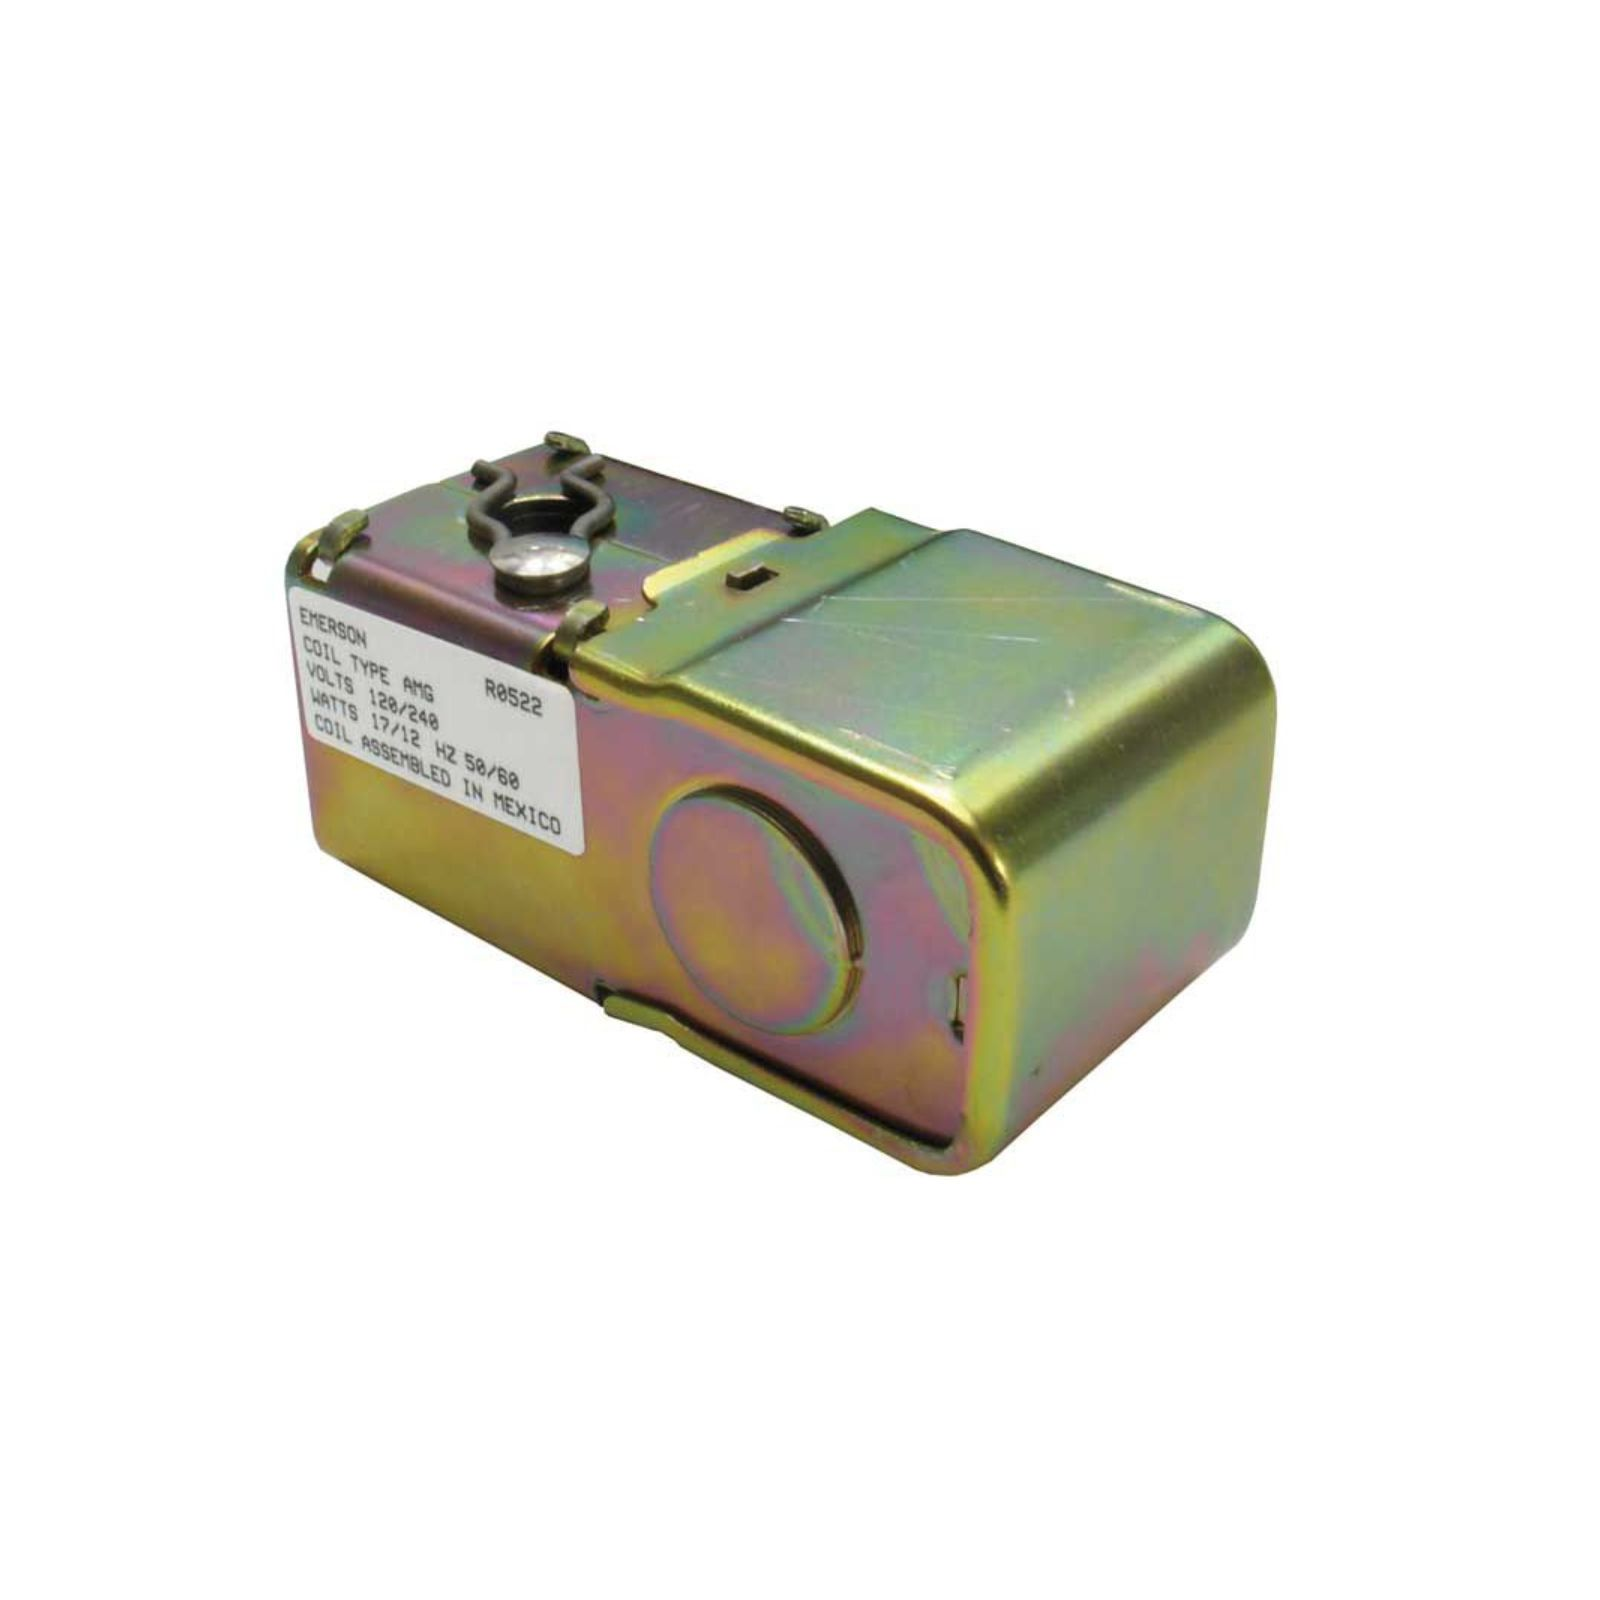 Emerson Climate 61-AMG24V - Solenoid Coil - 24VAC  50/60 Hz